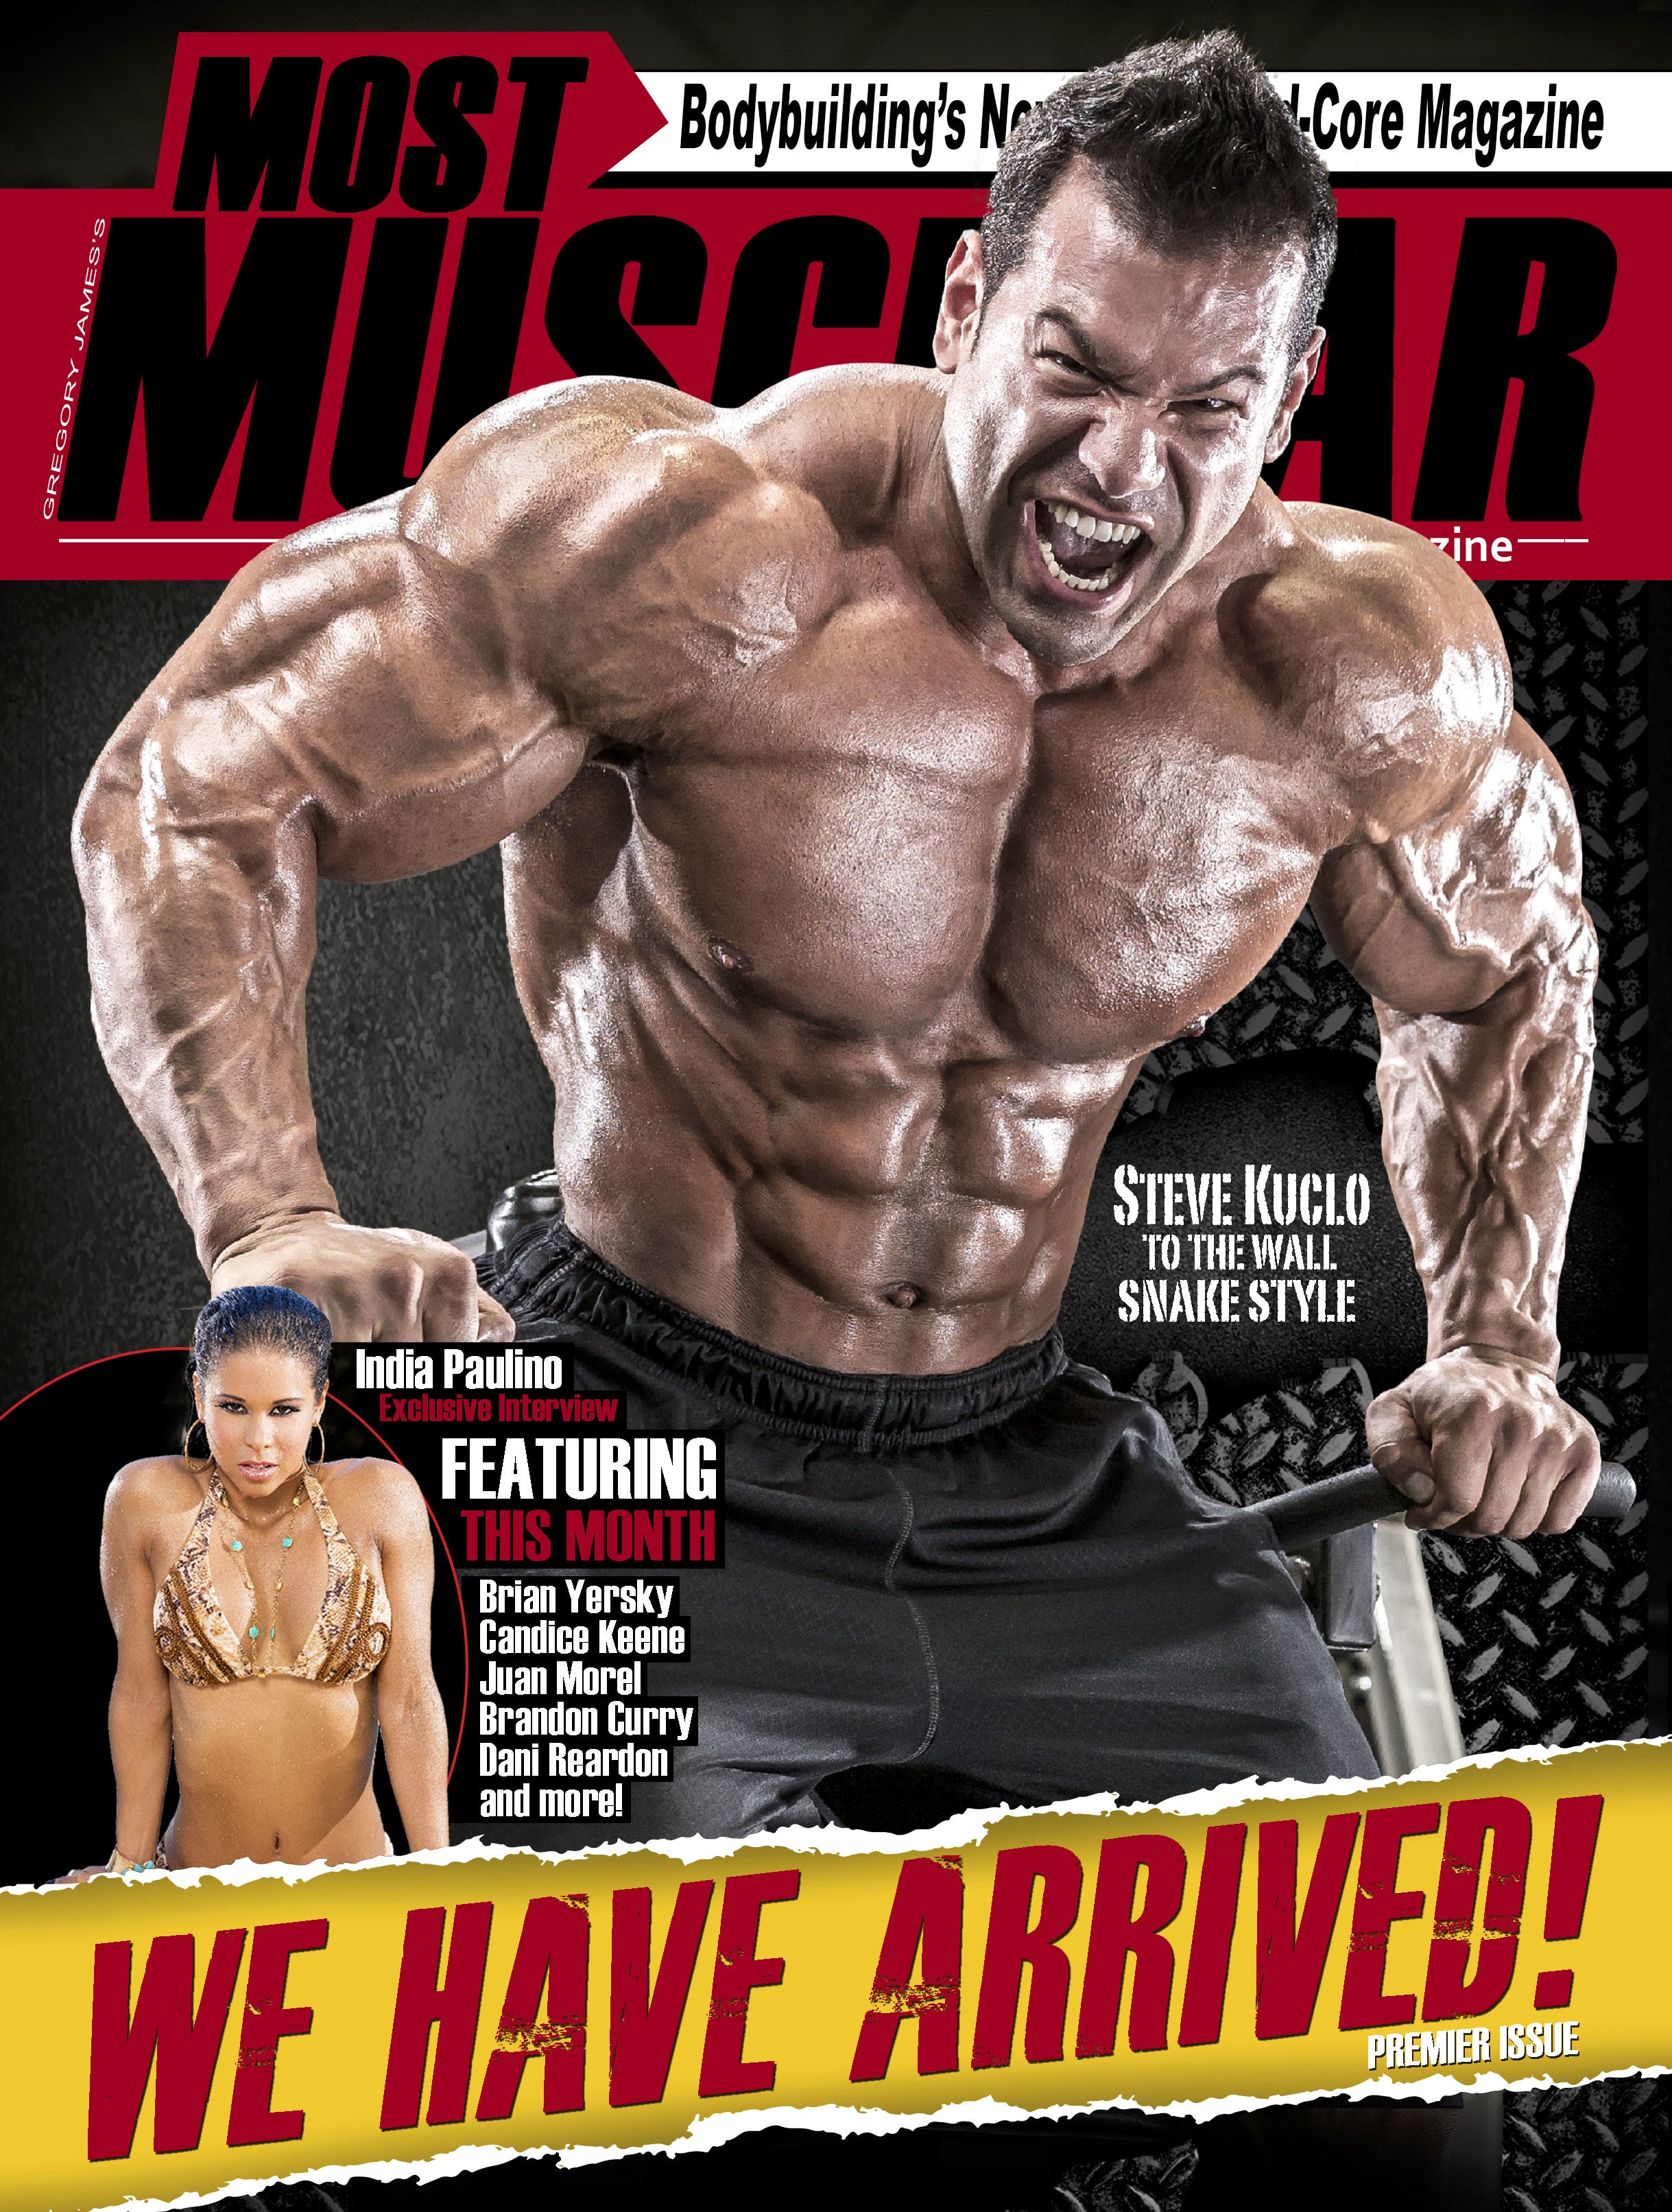 Most Muscular Magazine - PREMIER ISSUE Cover Gregory James